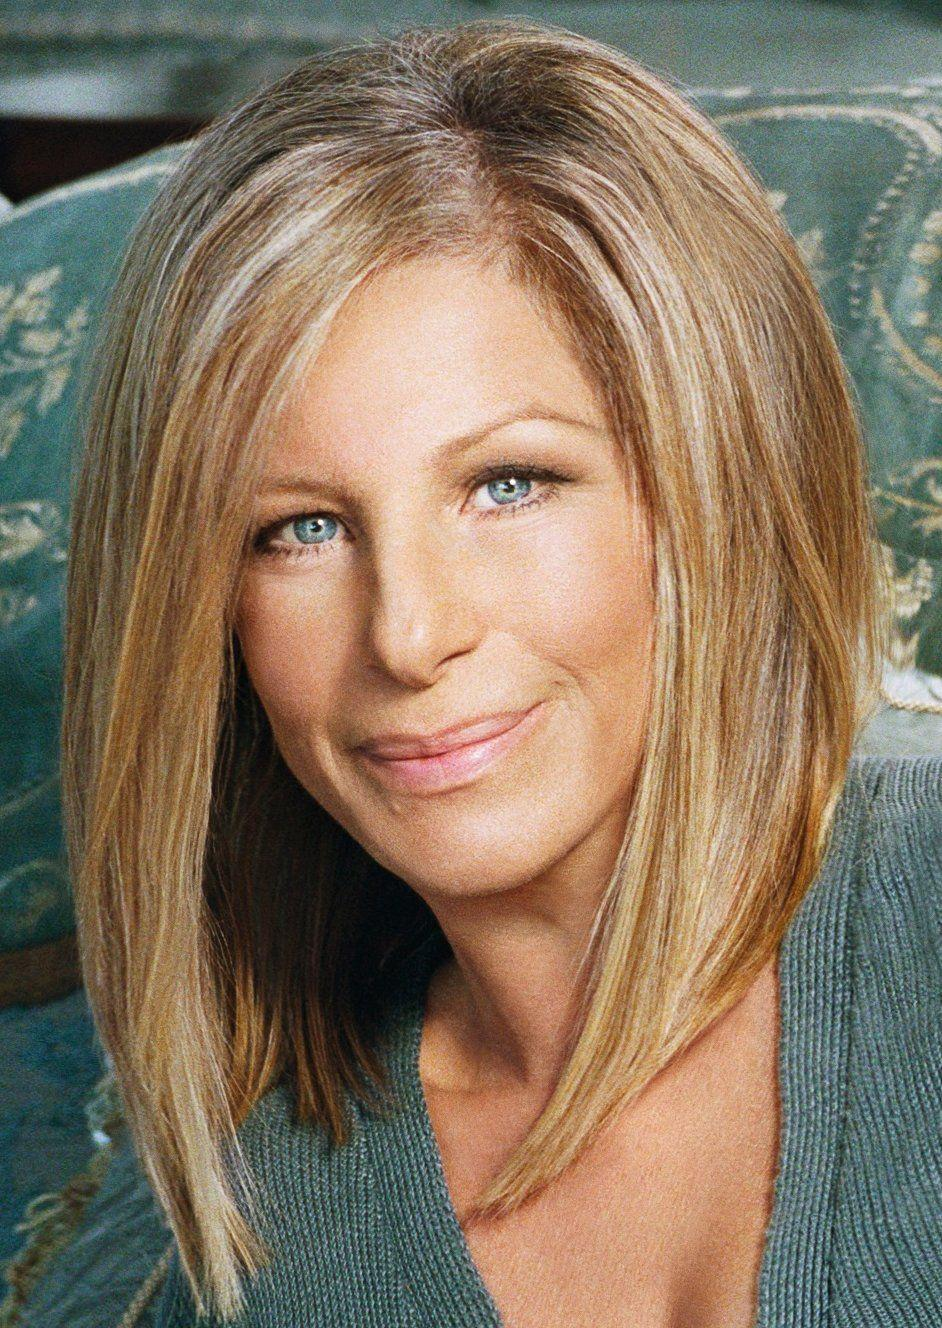 Barbra Streisand Wallpapers Desktop